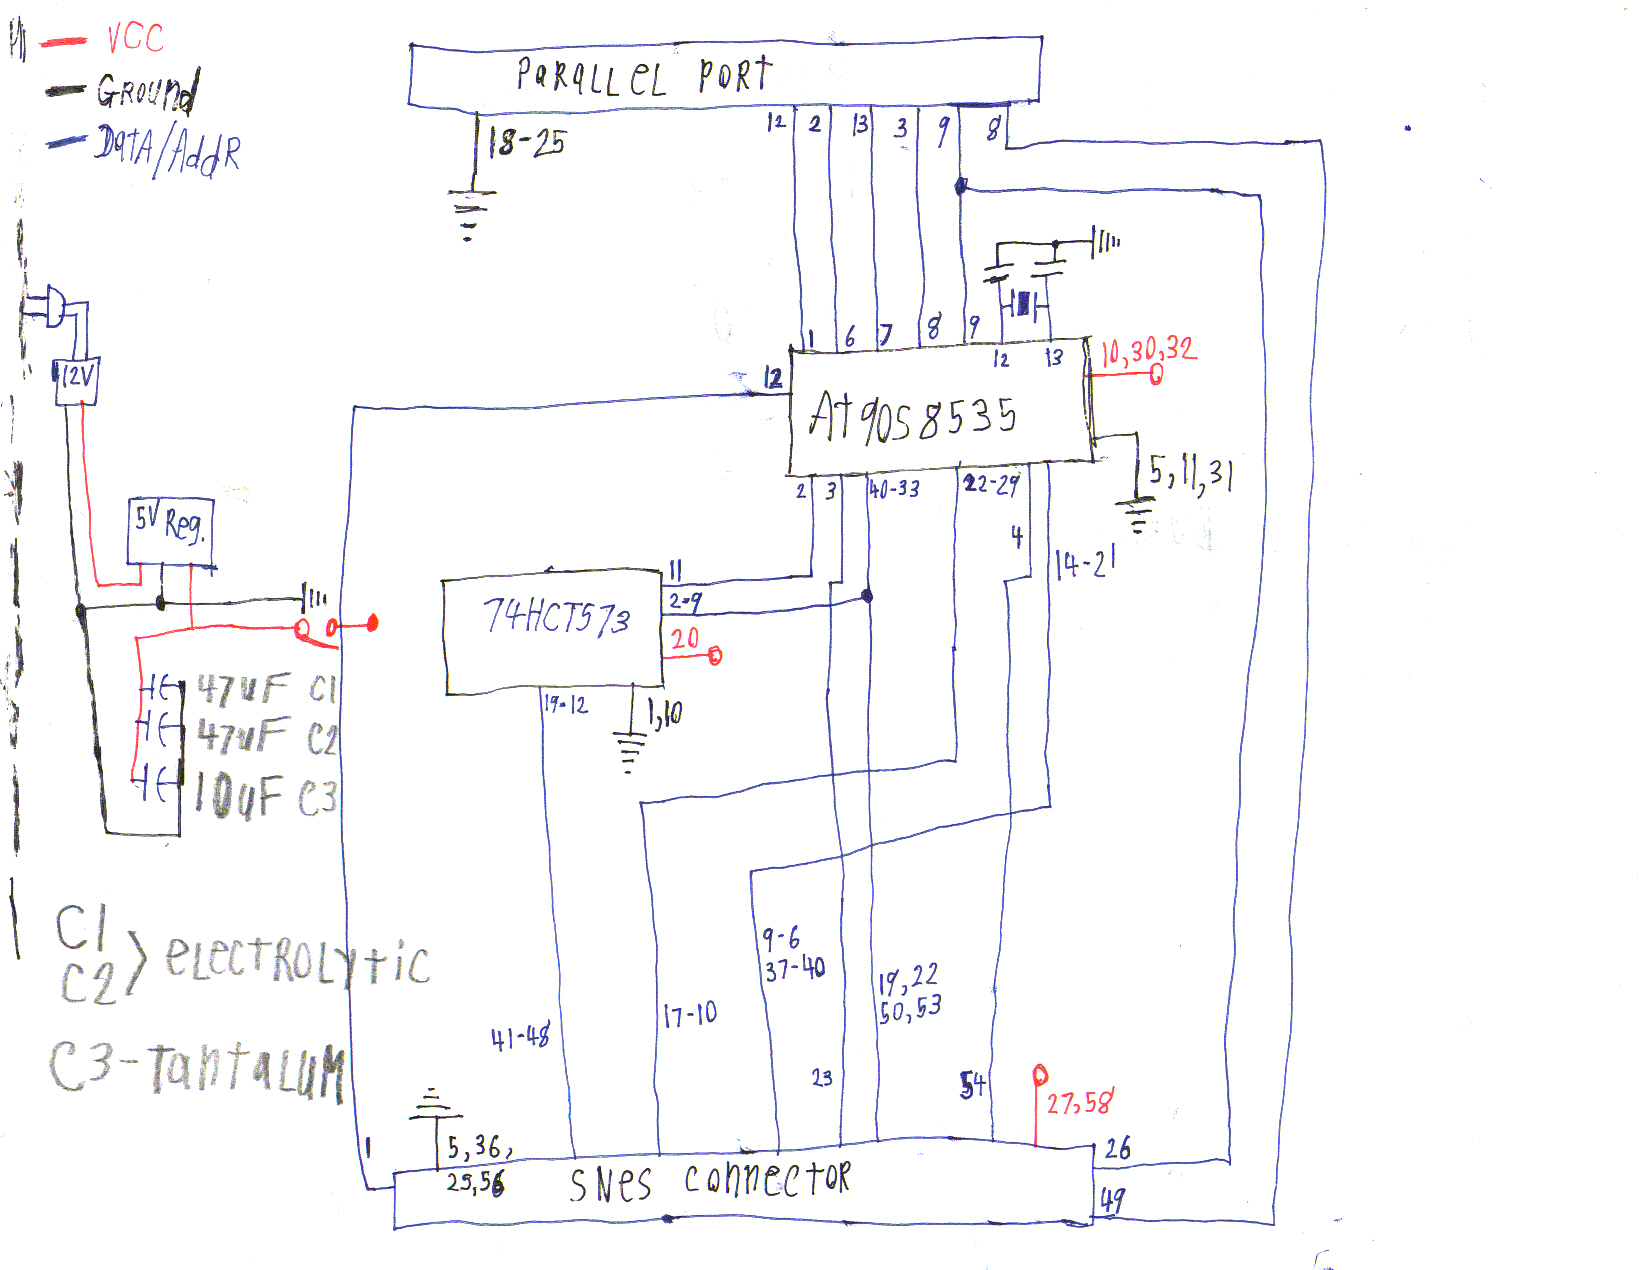 Snes Cart Programmer Schematics Power Supply Archives Electronic Circuit Diagram Seems This Hand Drawn Schematic Refuses To Die It Was Found In The Archiveorg Wayback Machine Here